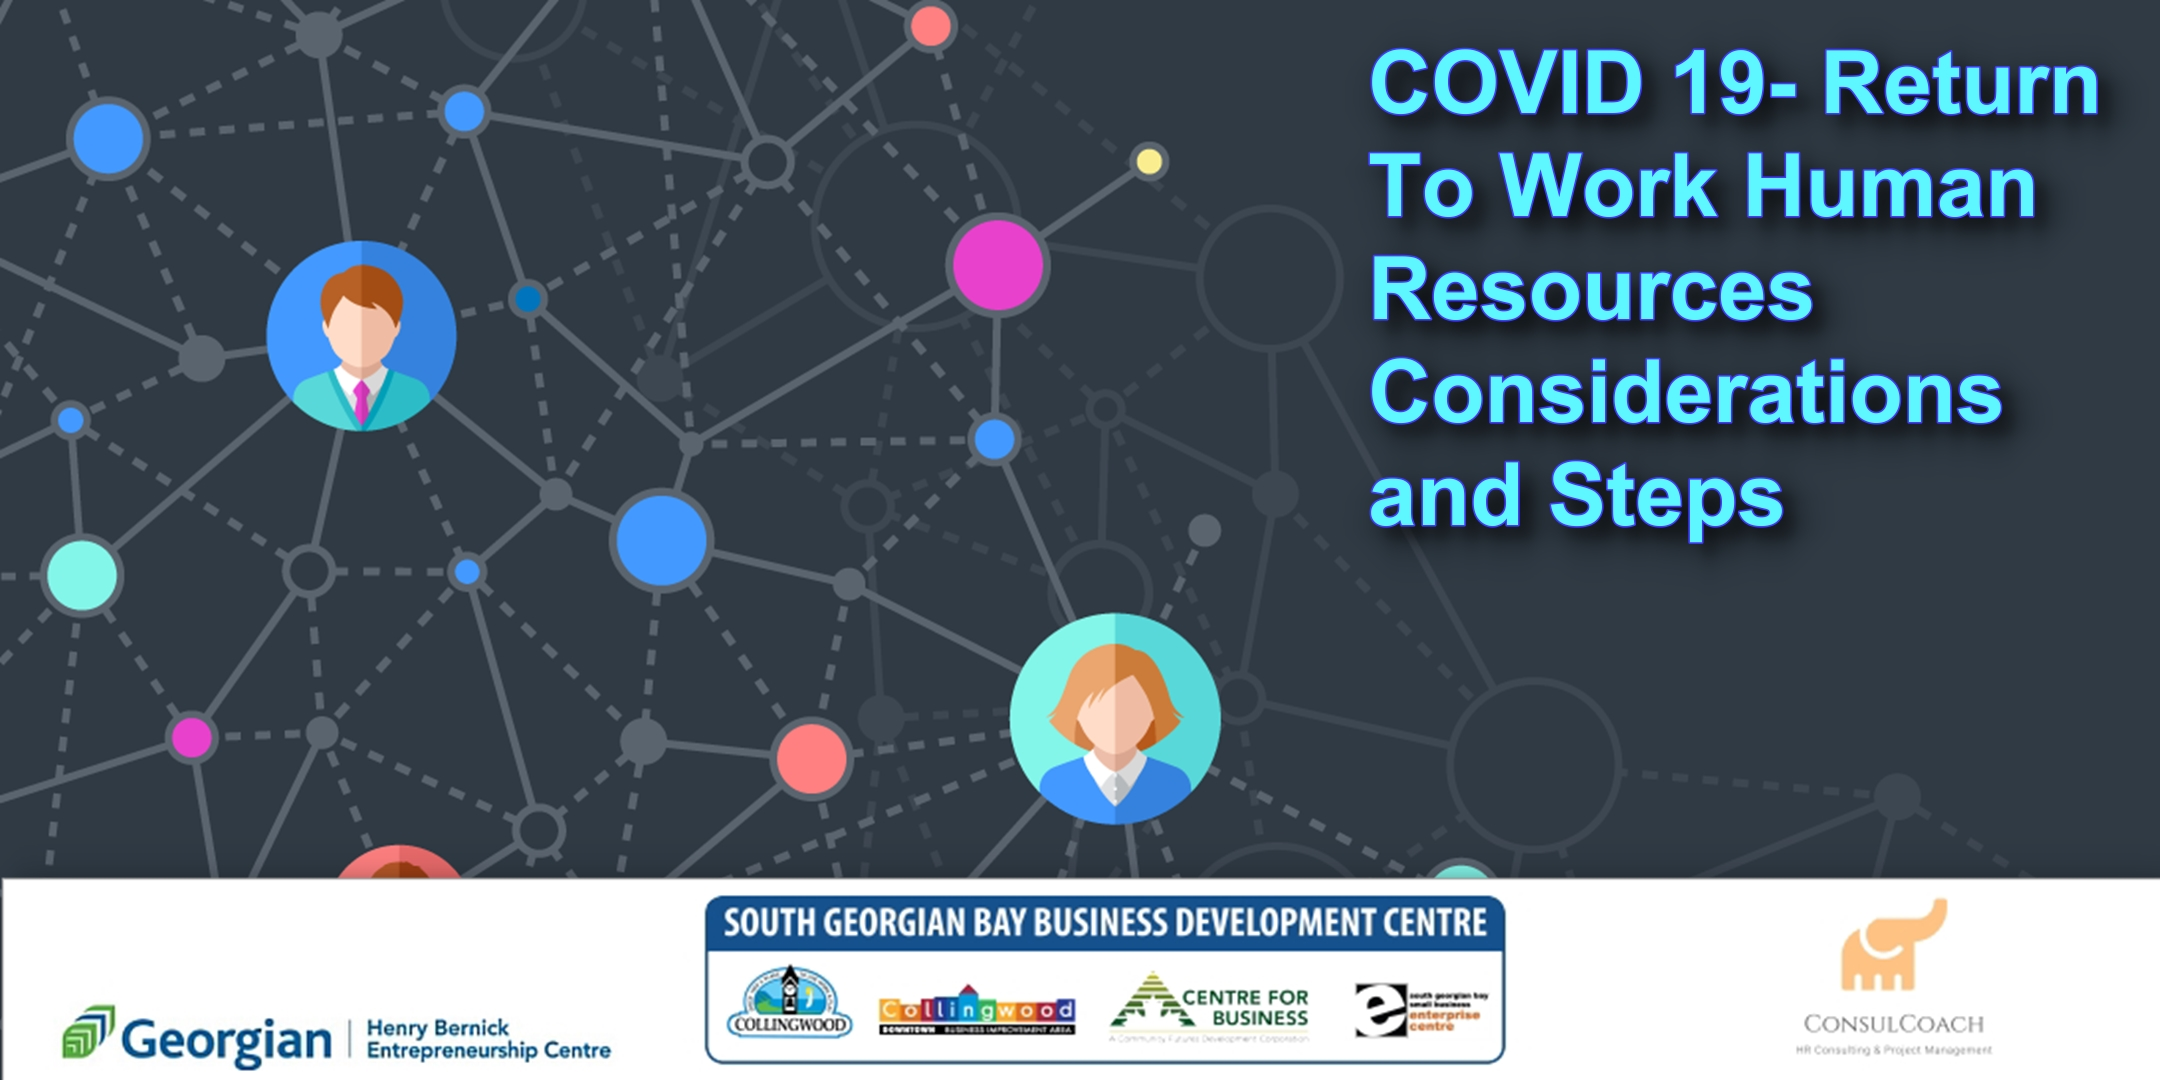 Access to webinar and slide deck (includes FAQ's and answers)- COVID-19 Return To Work Human Resources Considerations